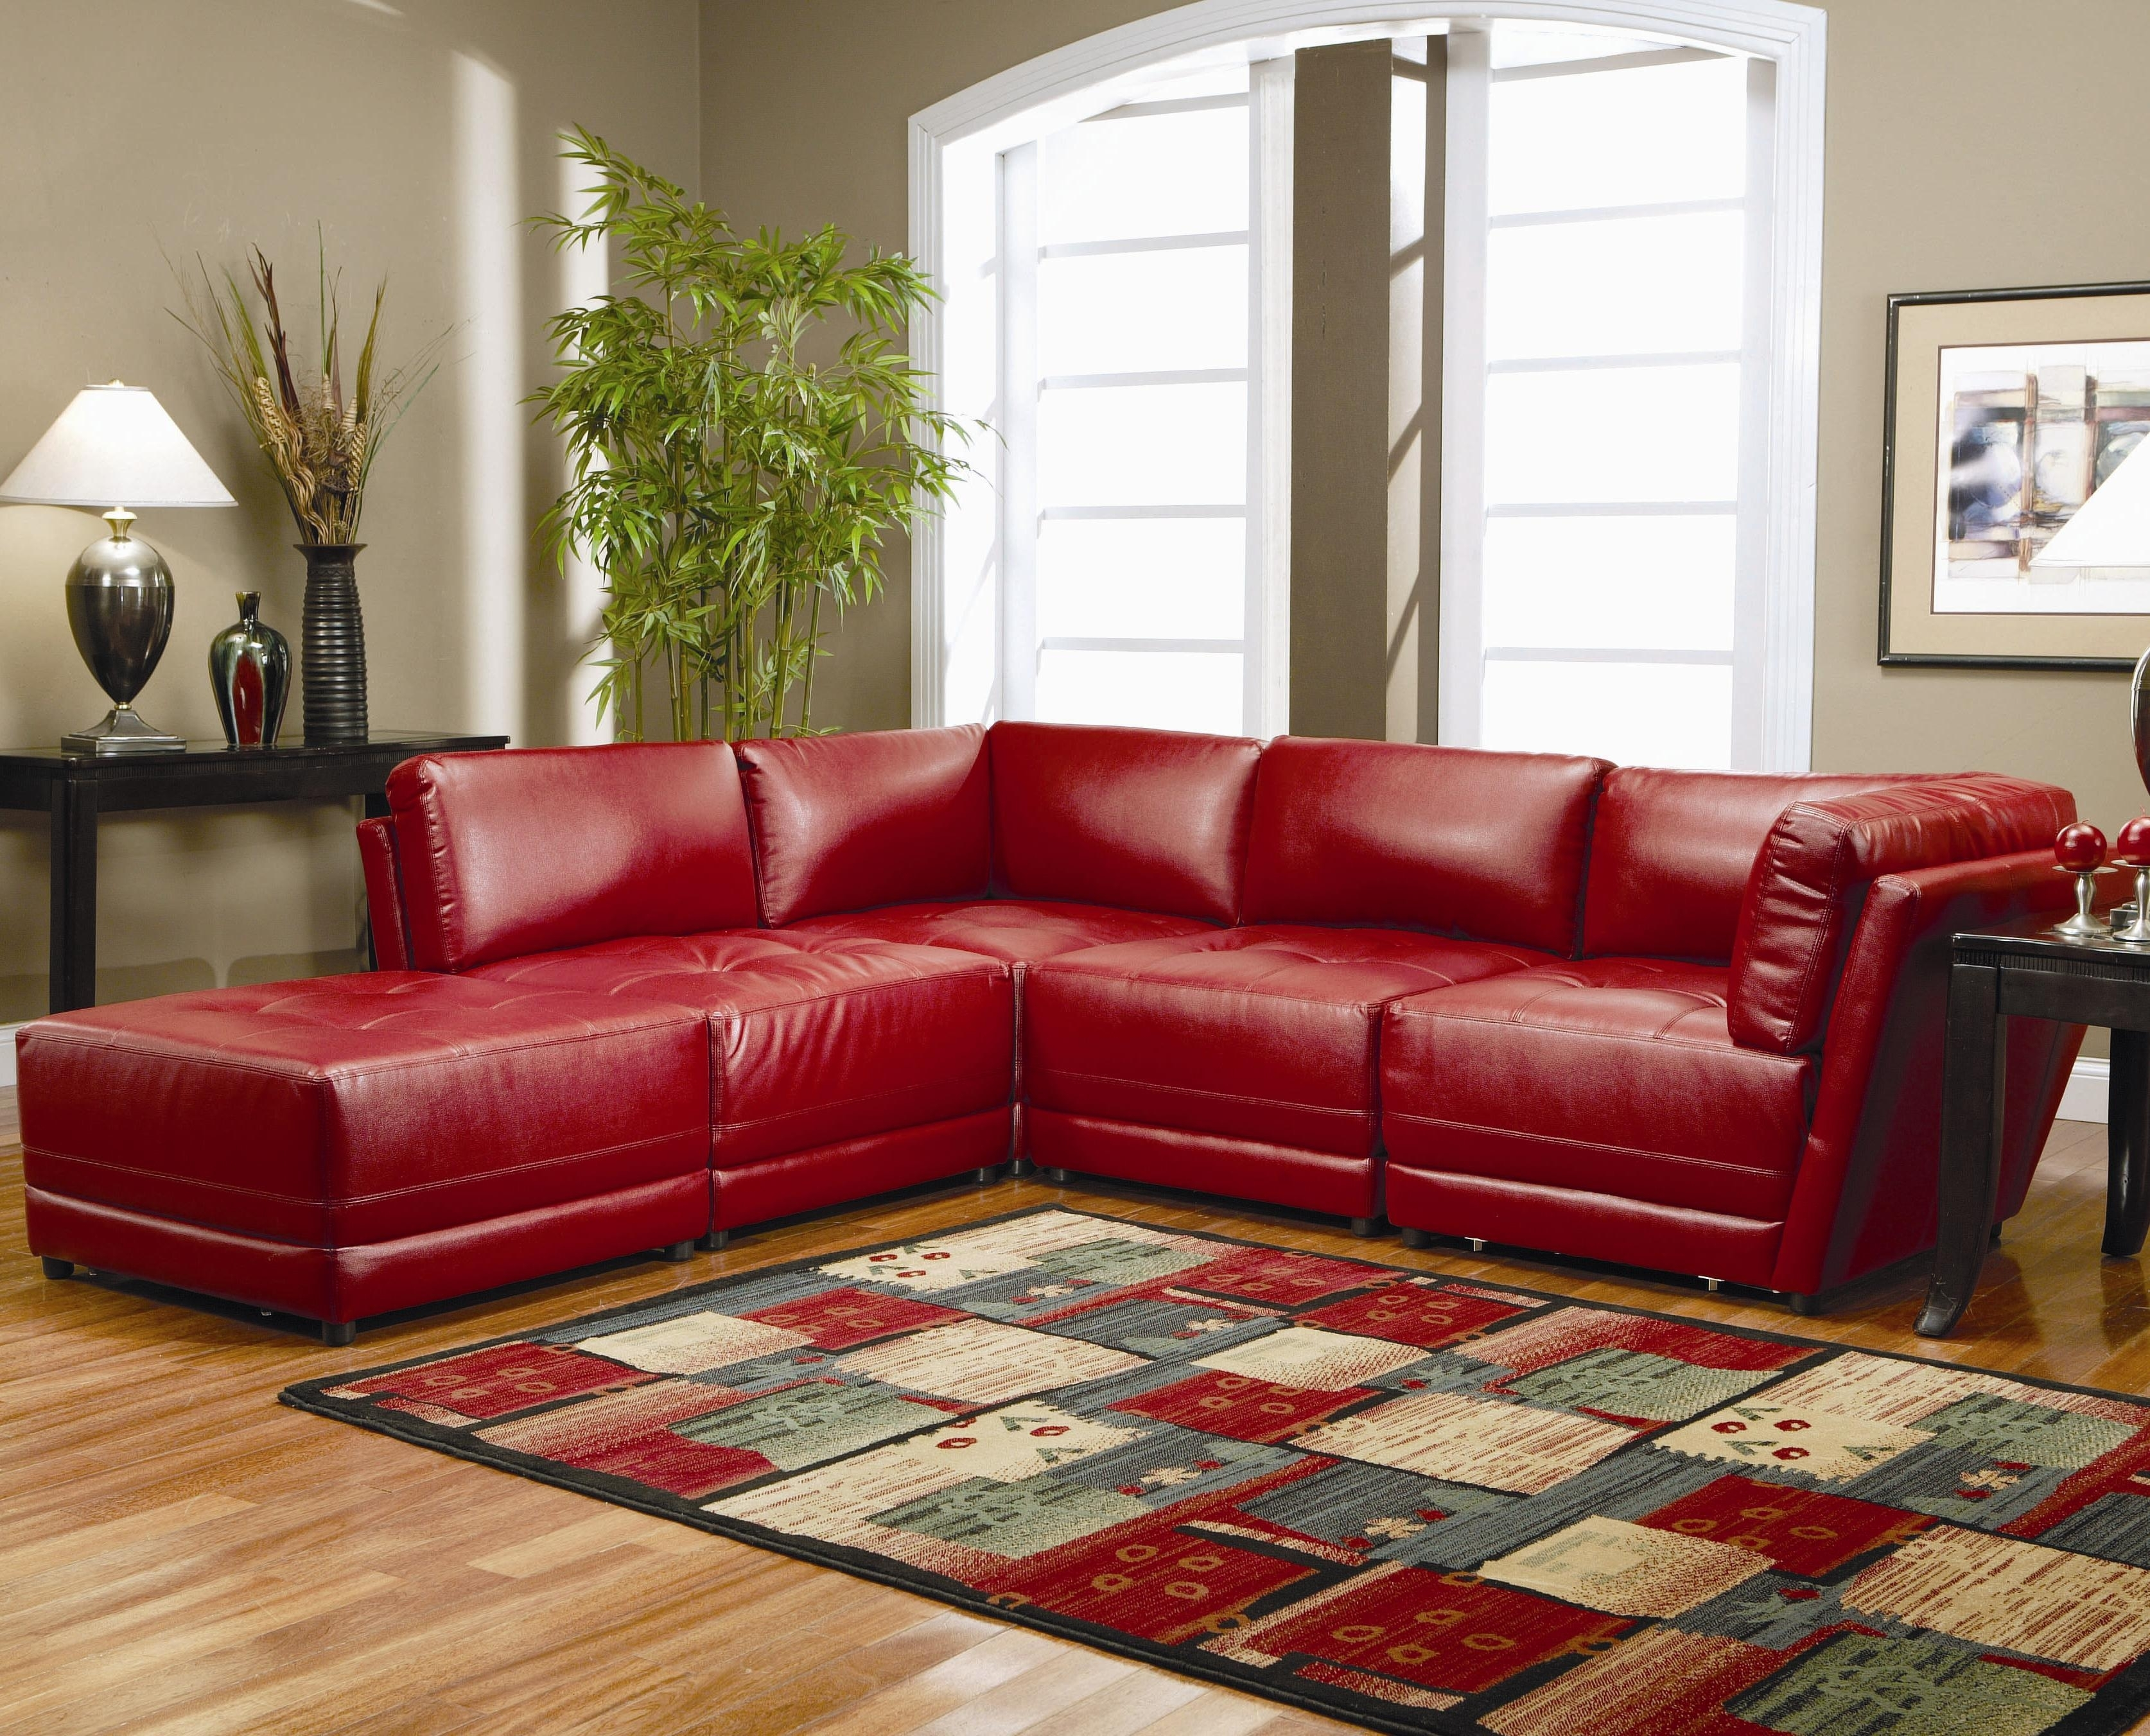 Warm Red Leather Sectional L Shaped Sofa Design Ideas For Living For Red Leather Couches For Living Room (Image 10 of 10)